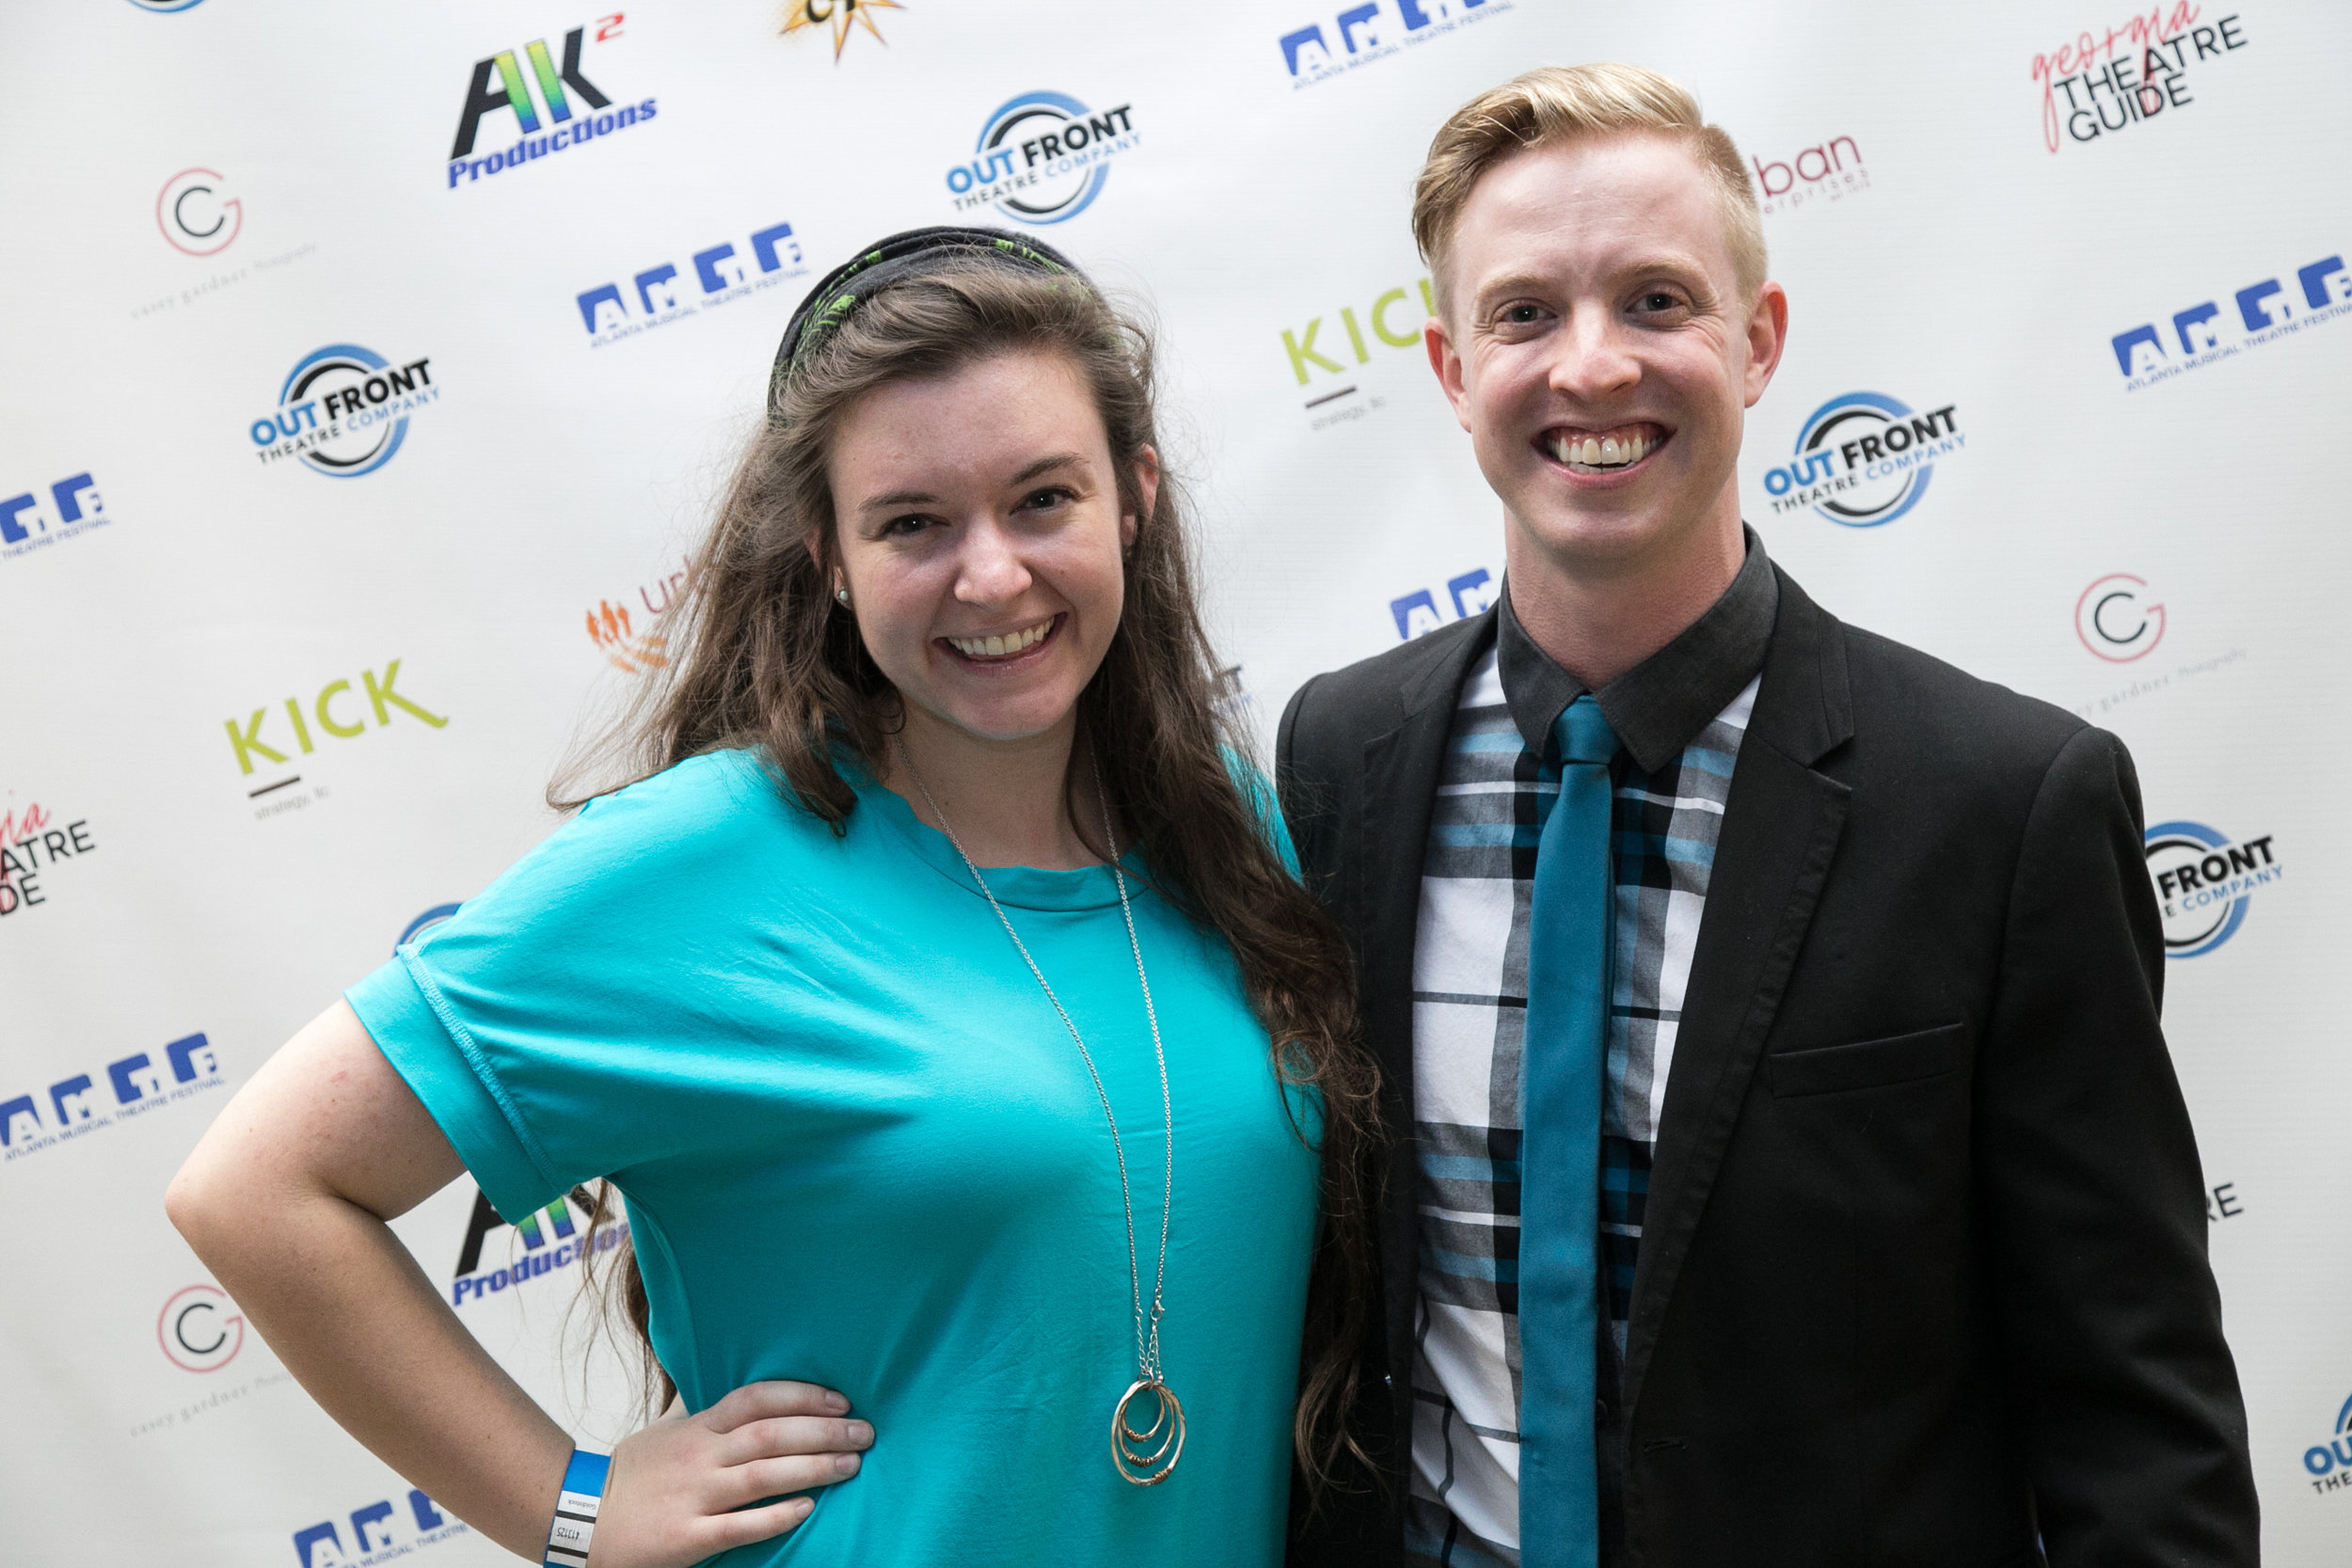 At the 2018 Atlanta Musical Theatre Festival with production manager Caitlin Cain.